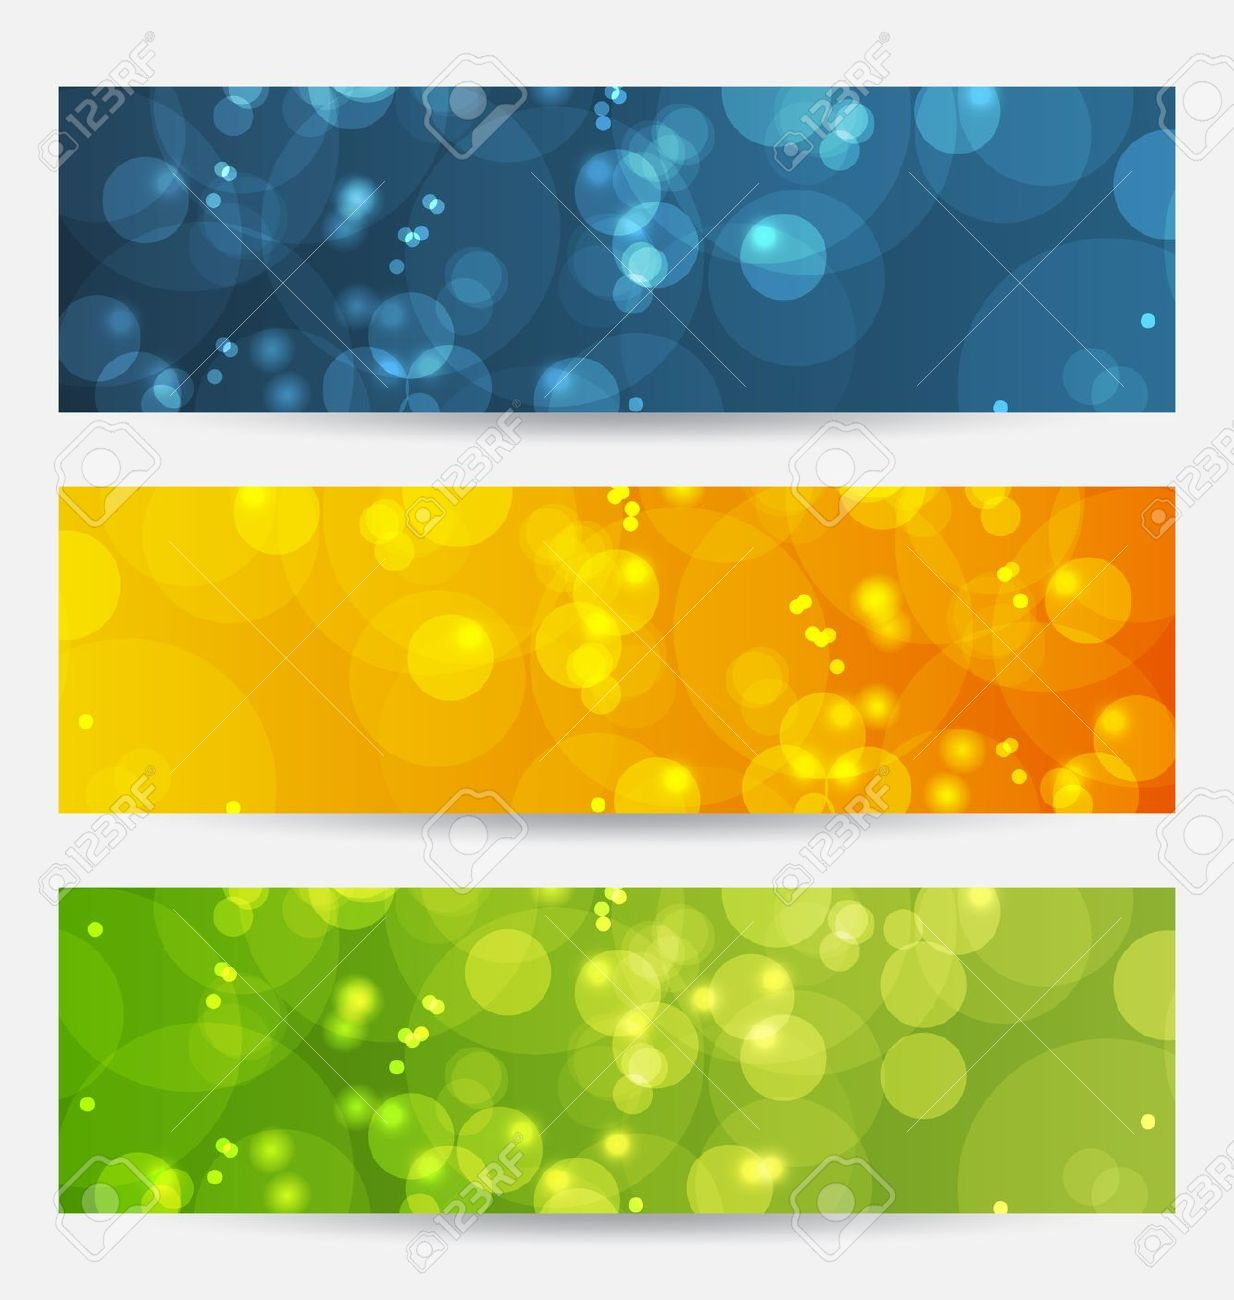 Illustration Set Of Abstract Backgrounds With Bokeh Effect Royalty.